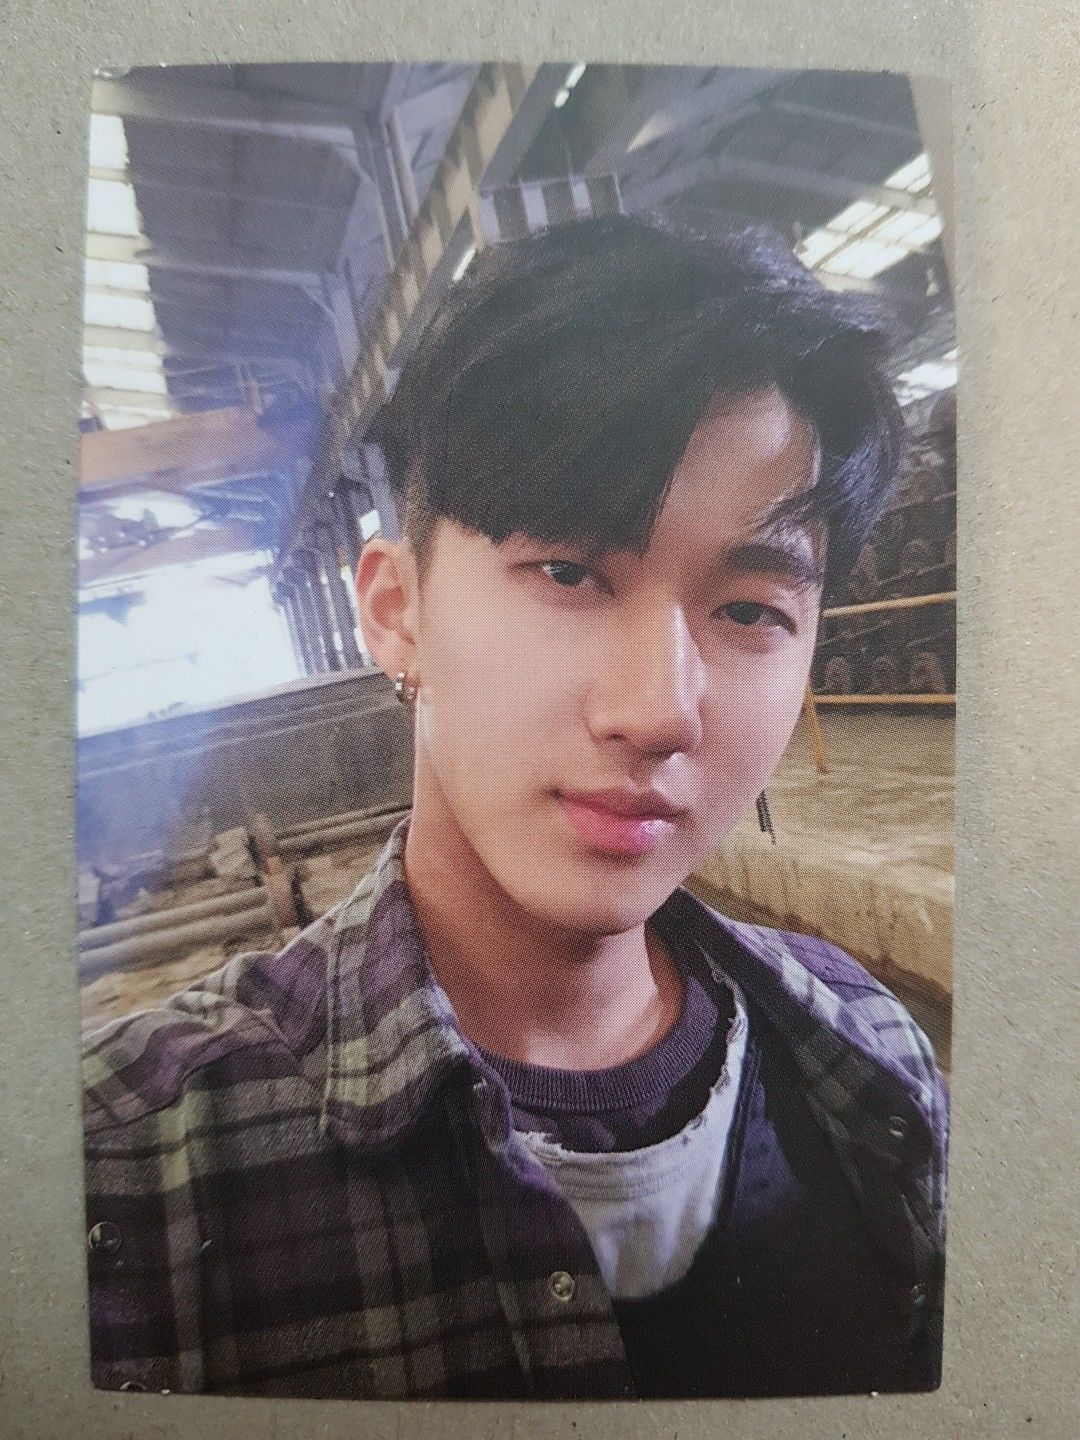 $12 99 - Stray Kids Changbin Authentic Official Photocard